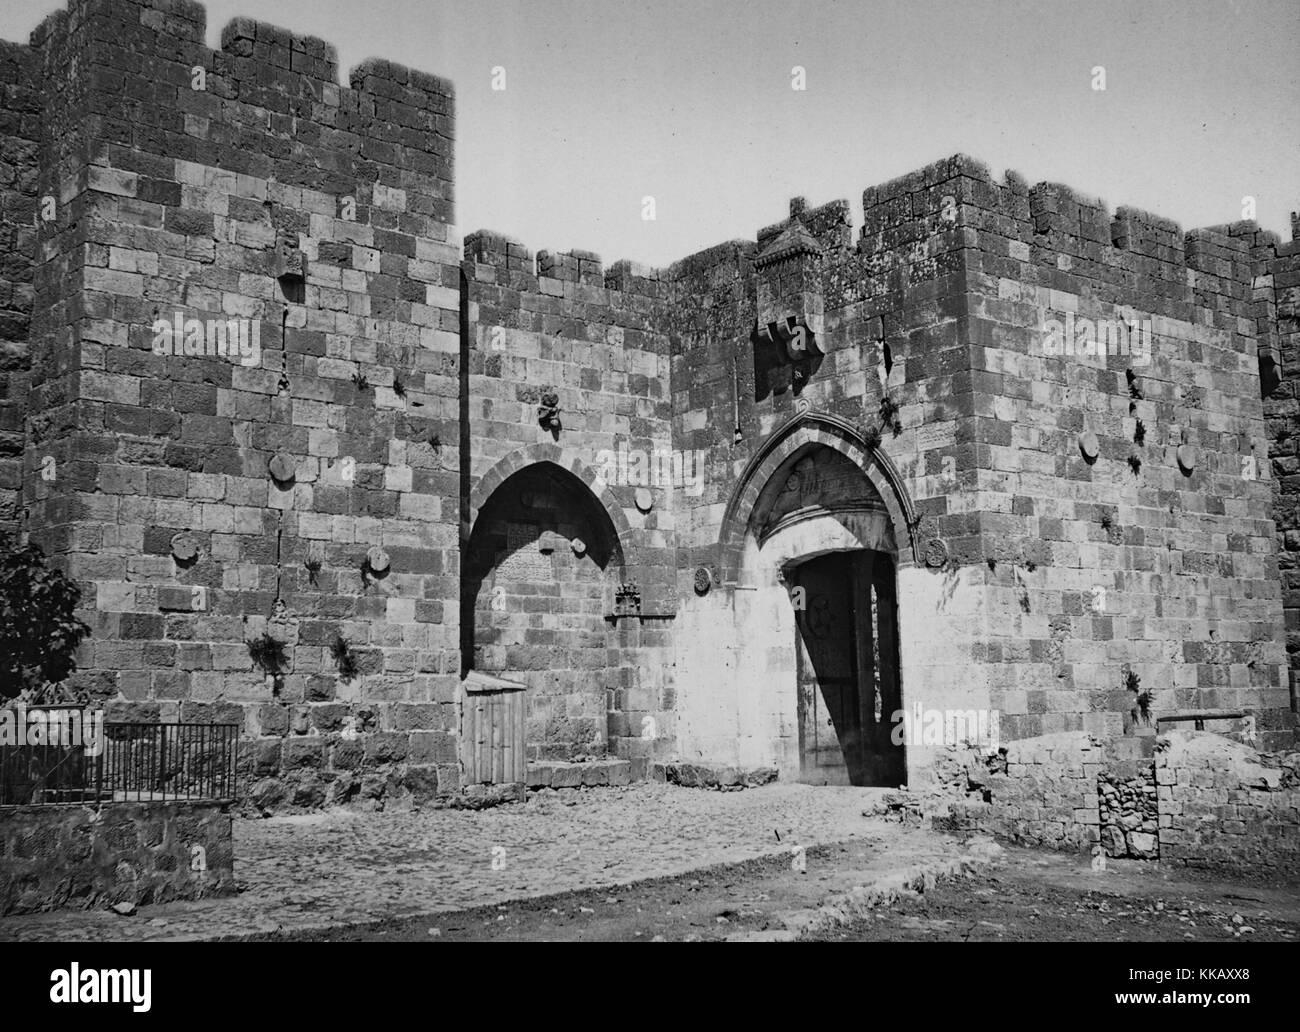 The Jaffa Gate, also known as David's Gate,  one of the eight gates that enter the Old City of Jerusalem and - Stock Image